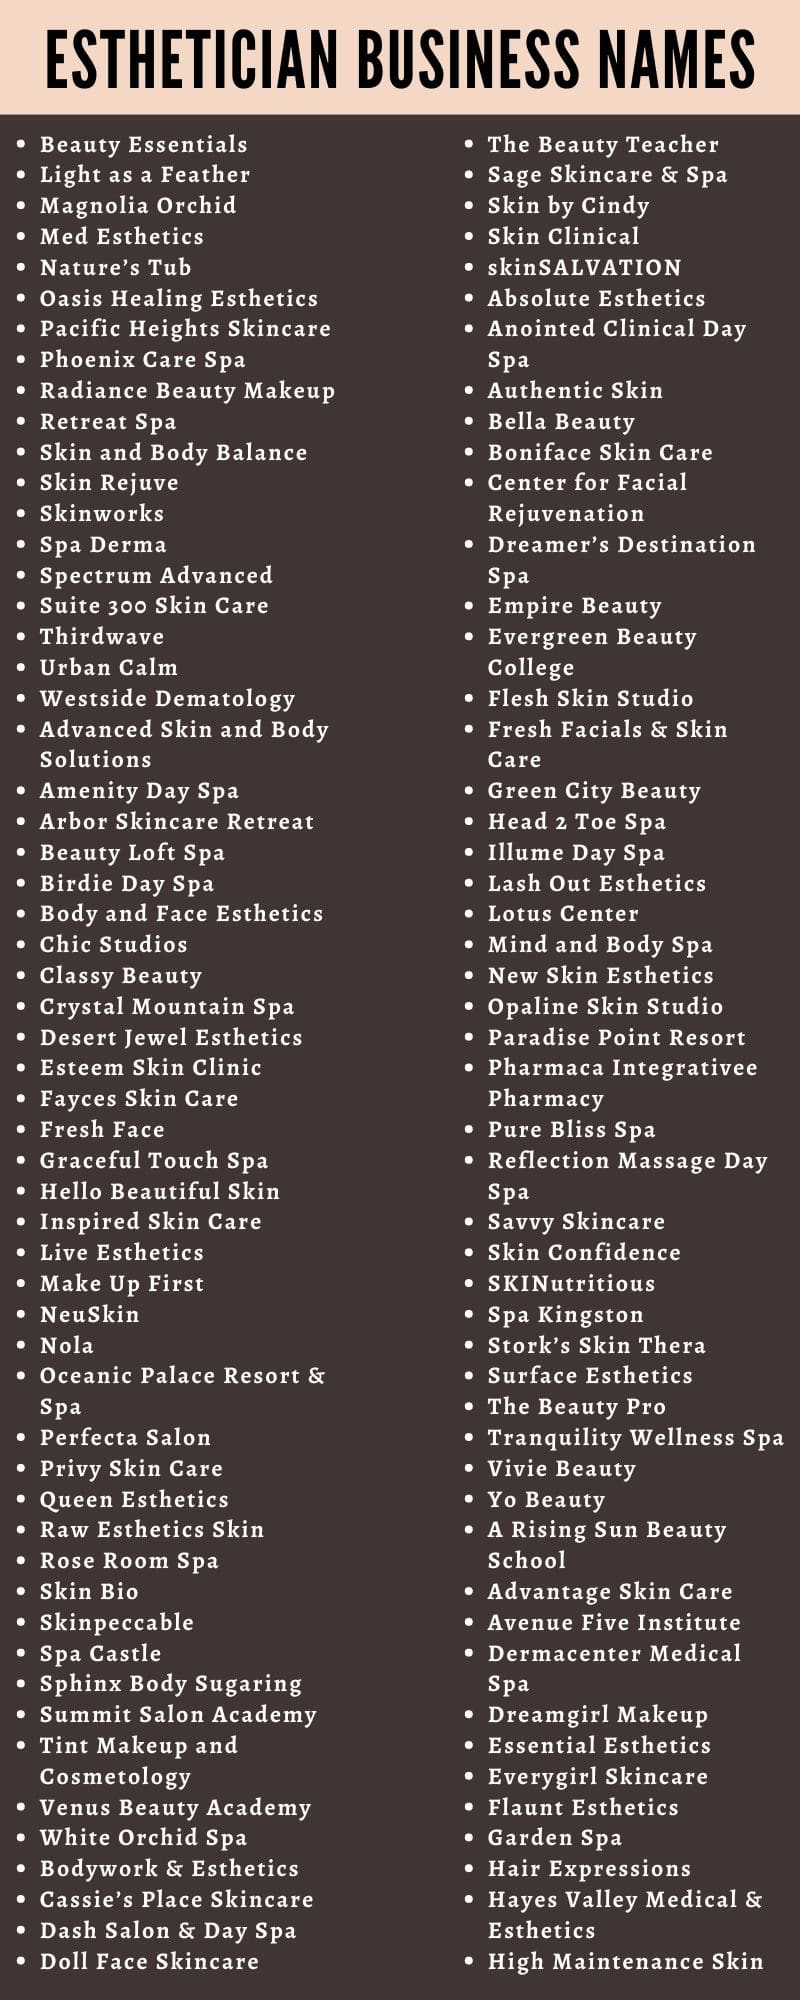 17 Catchy Esthetician Business Names Ideas and Suggestions